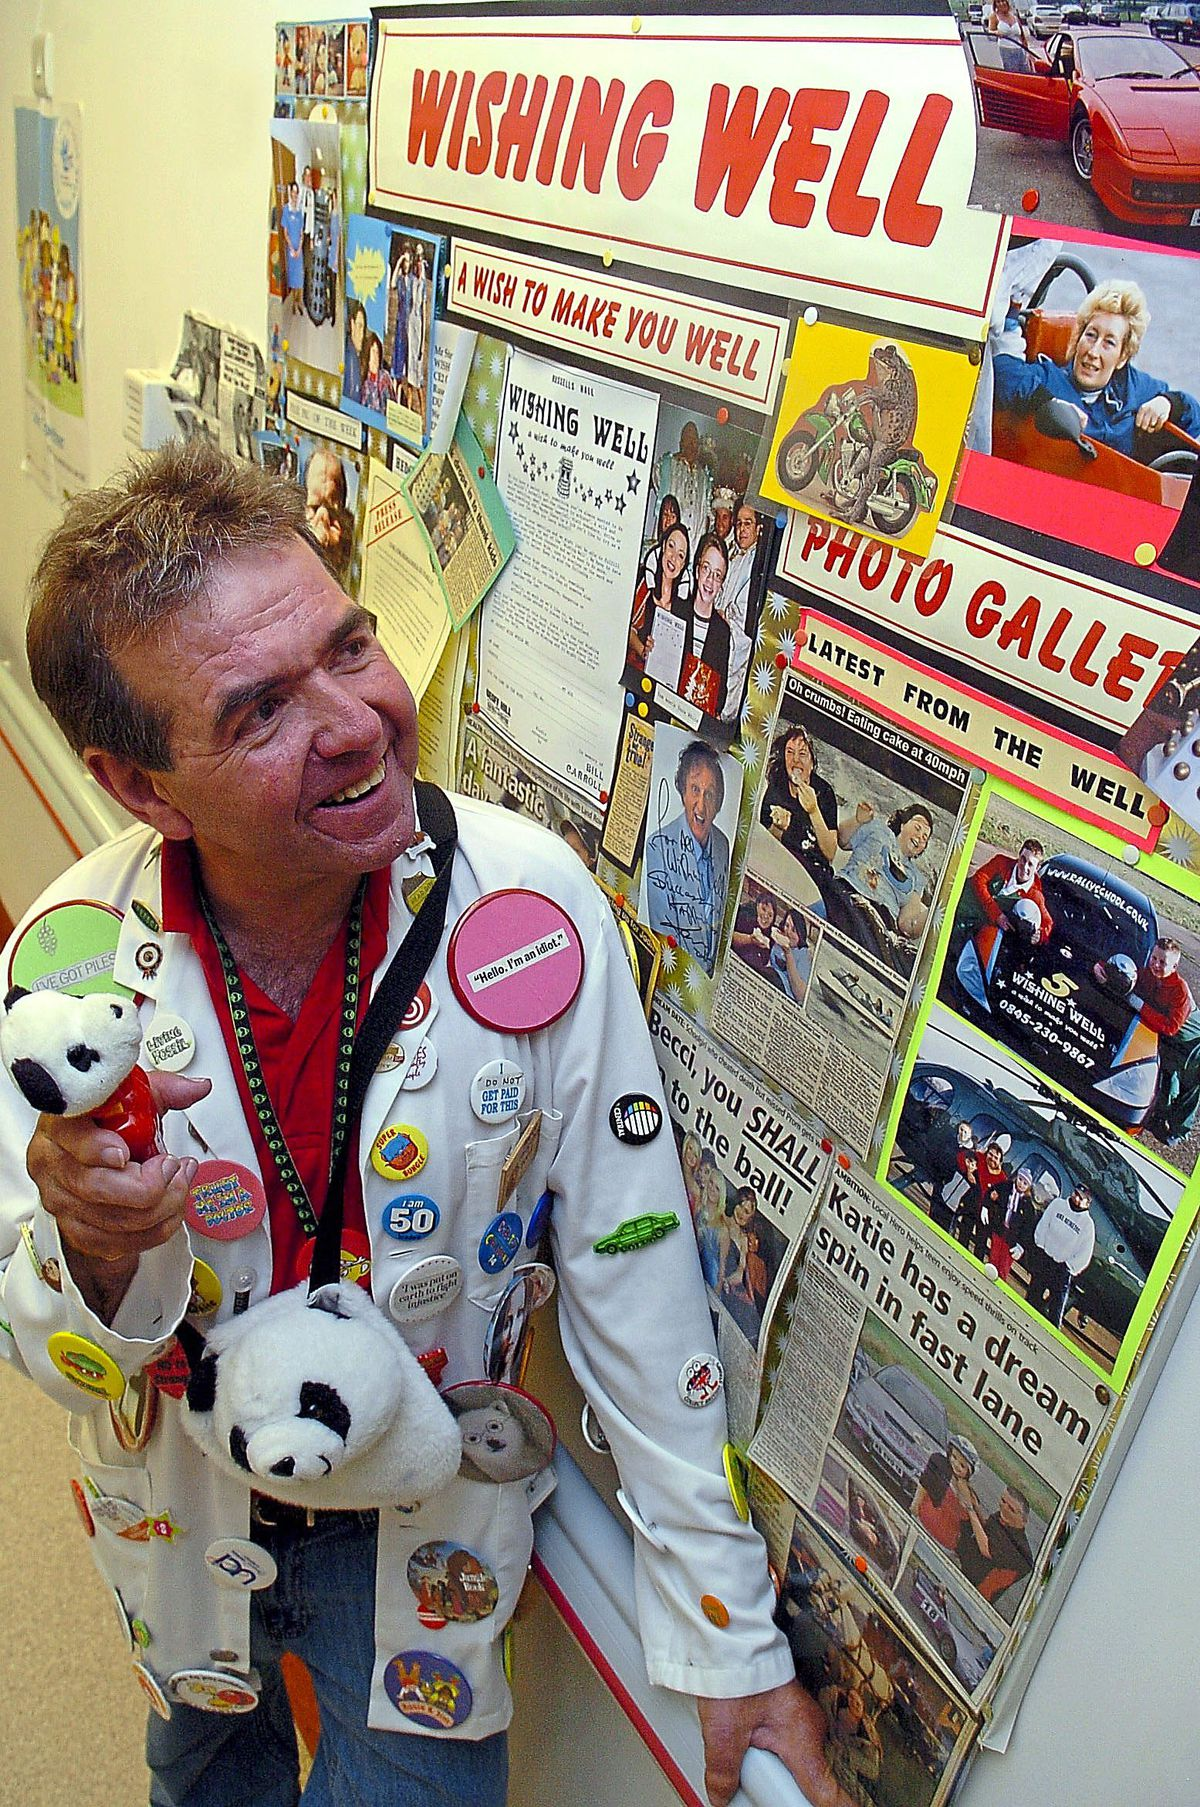 Steve Ford worked tirelessly to make dreams come true for poorly children